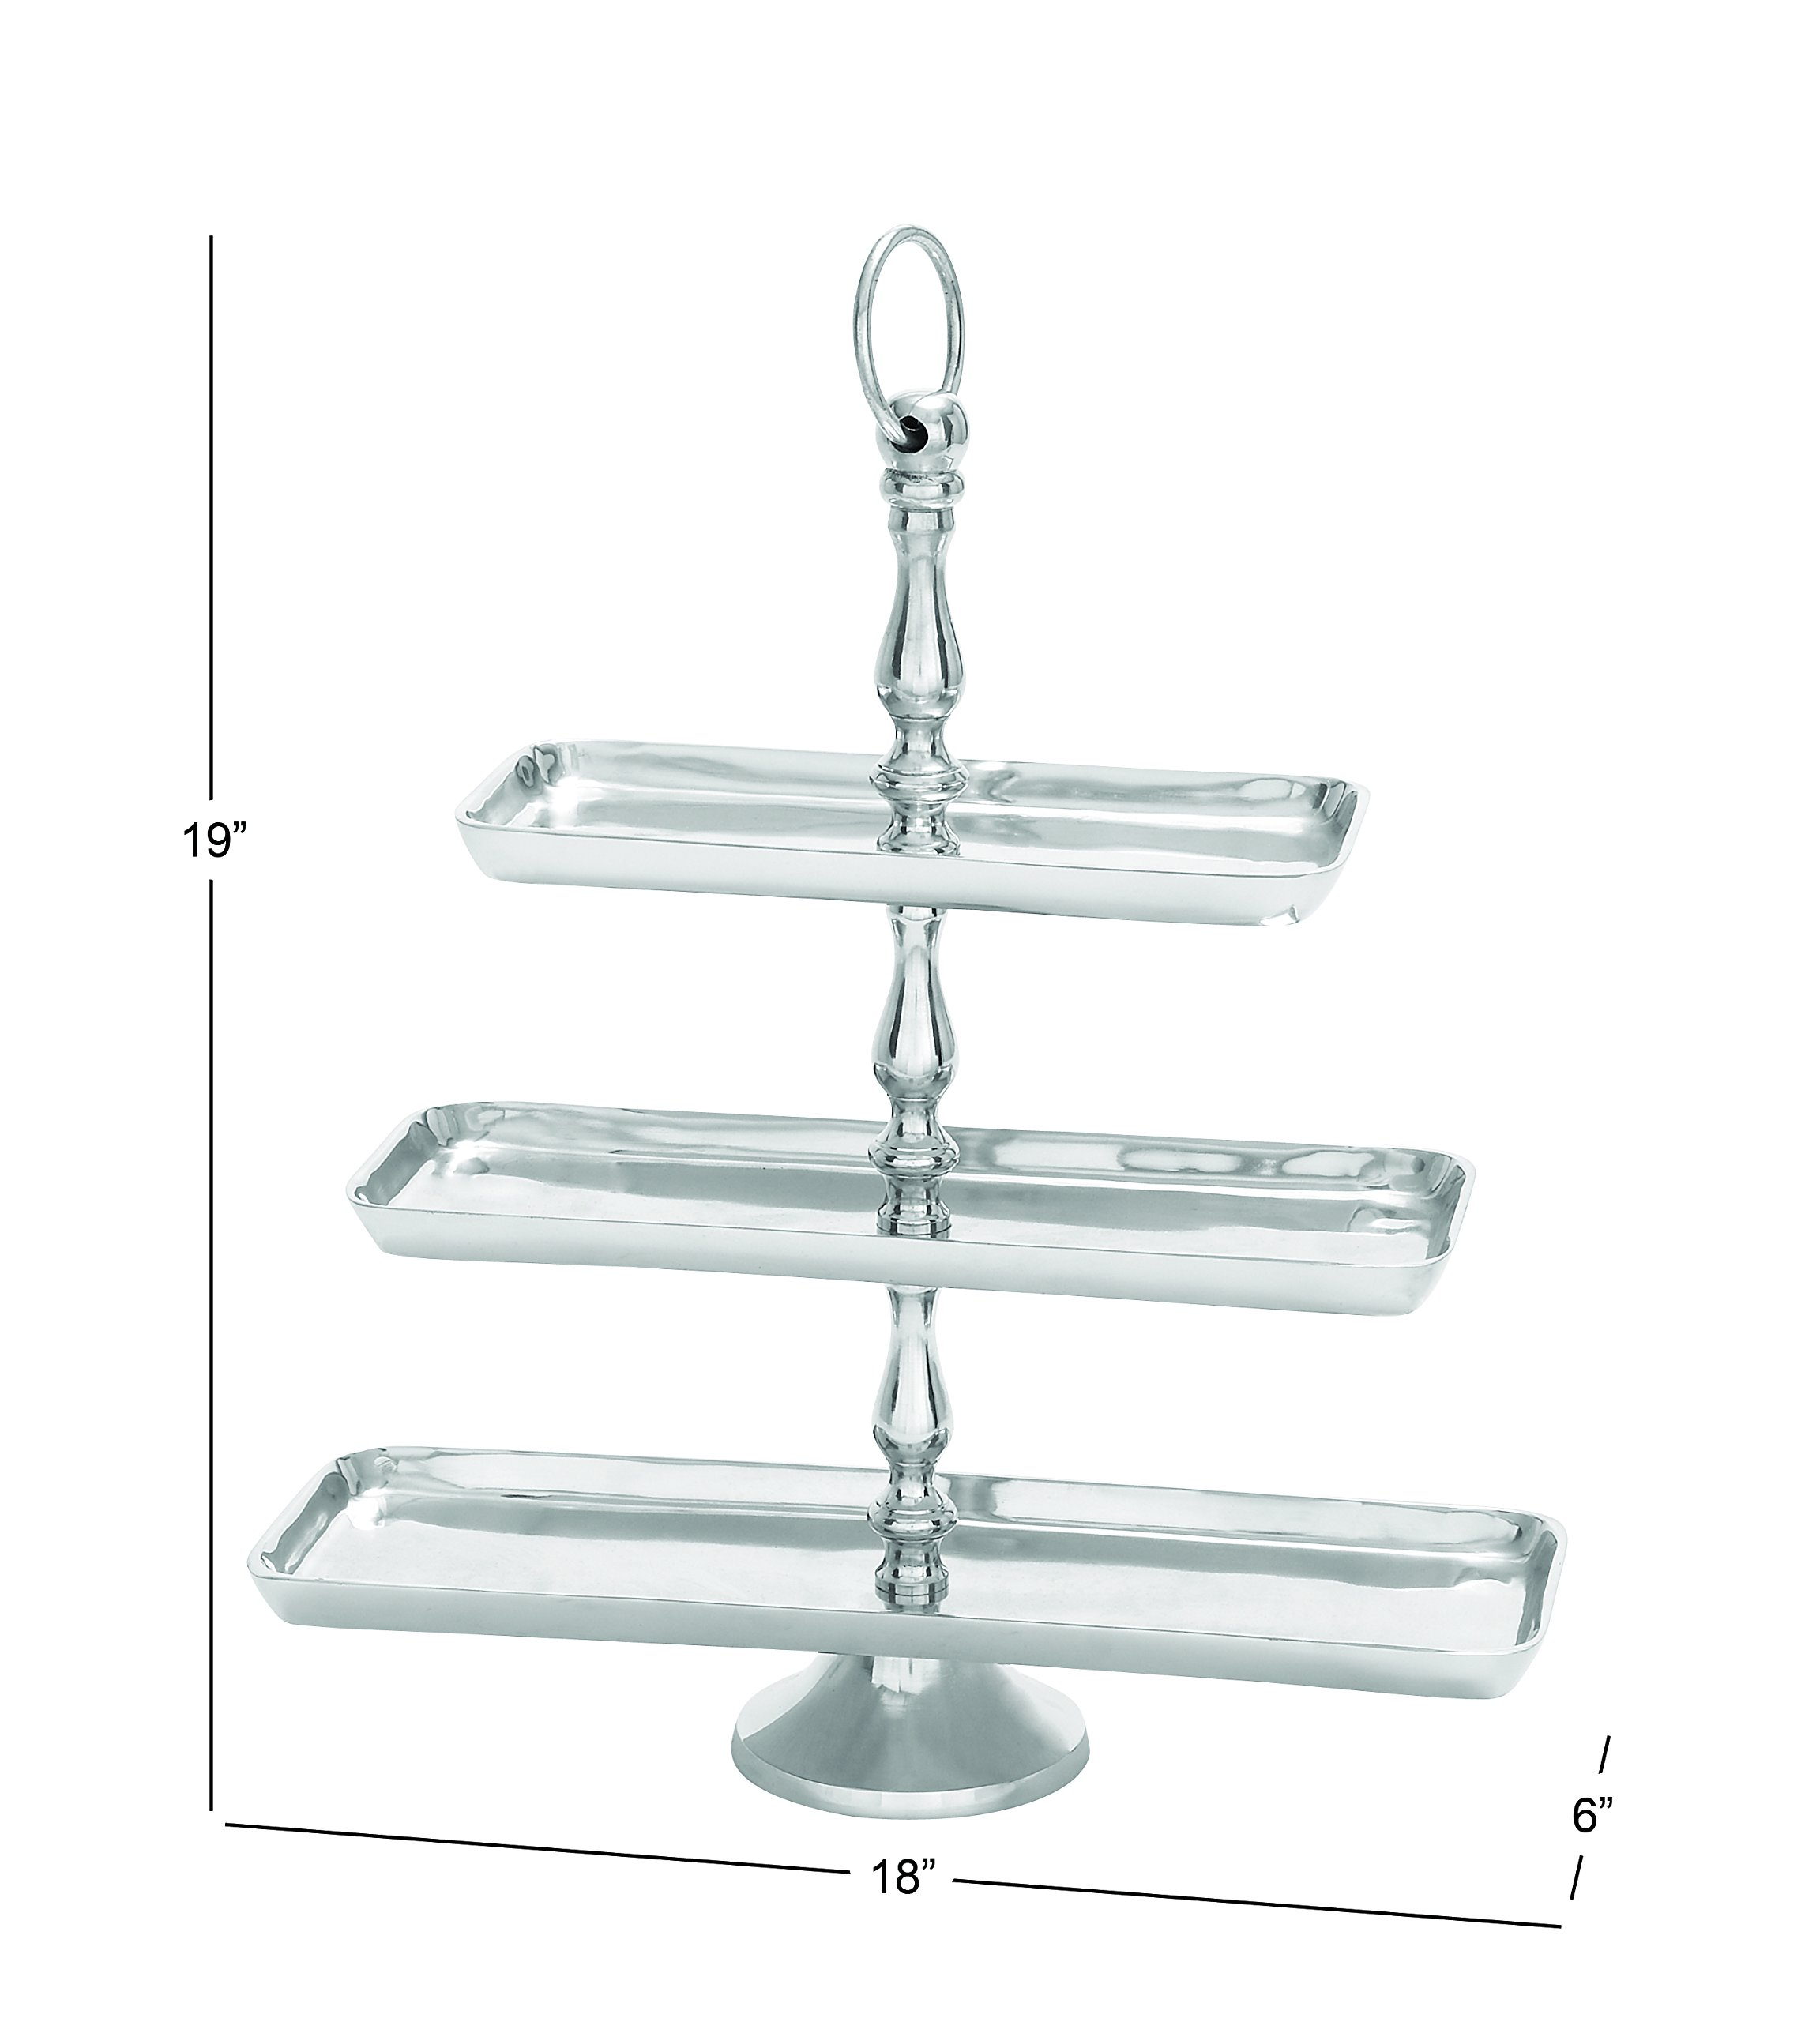 Deco 79 30828 Aluminum 3-Tier Fruit Stand, 19''H/18''W